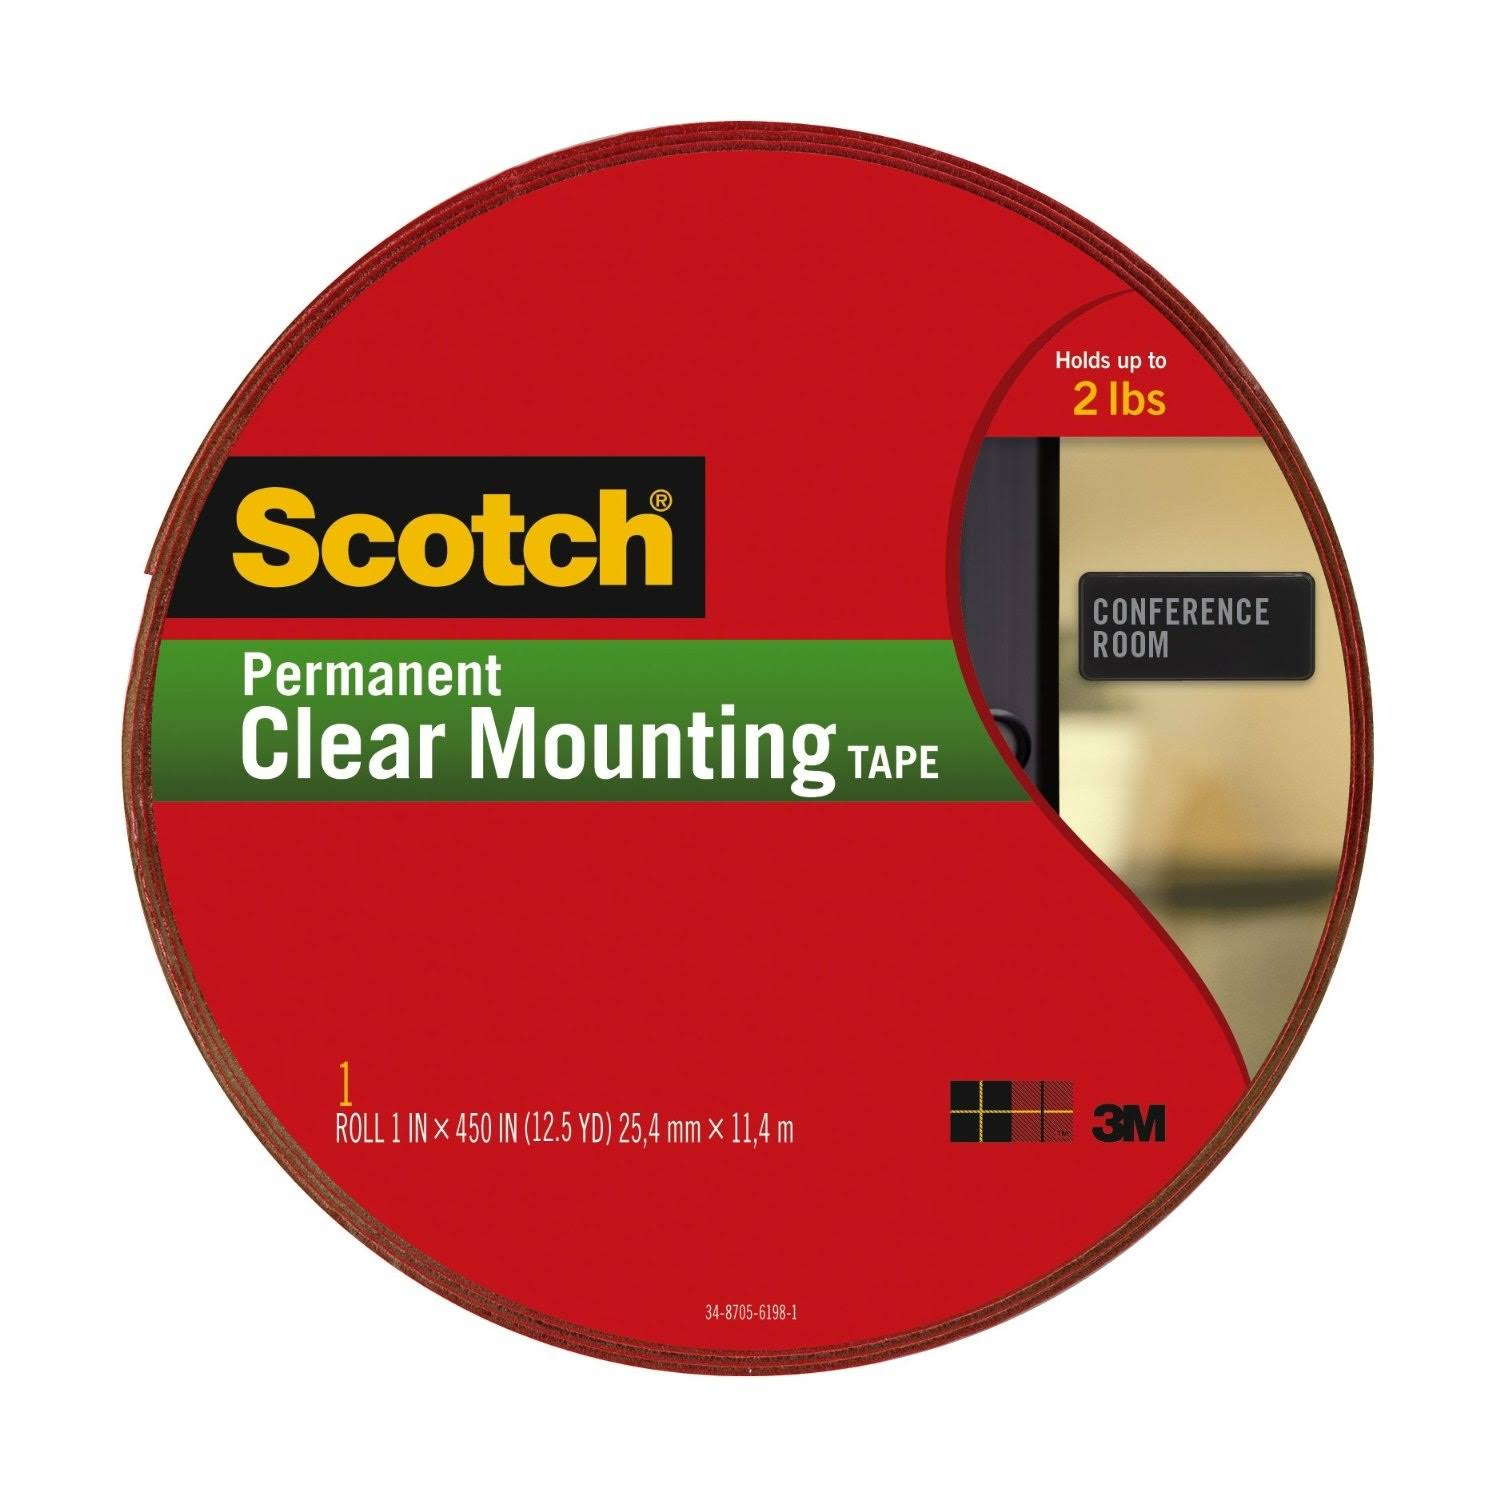 Scotch Permanent Heavy Duty Mounting Tape - 2.1yds